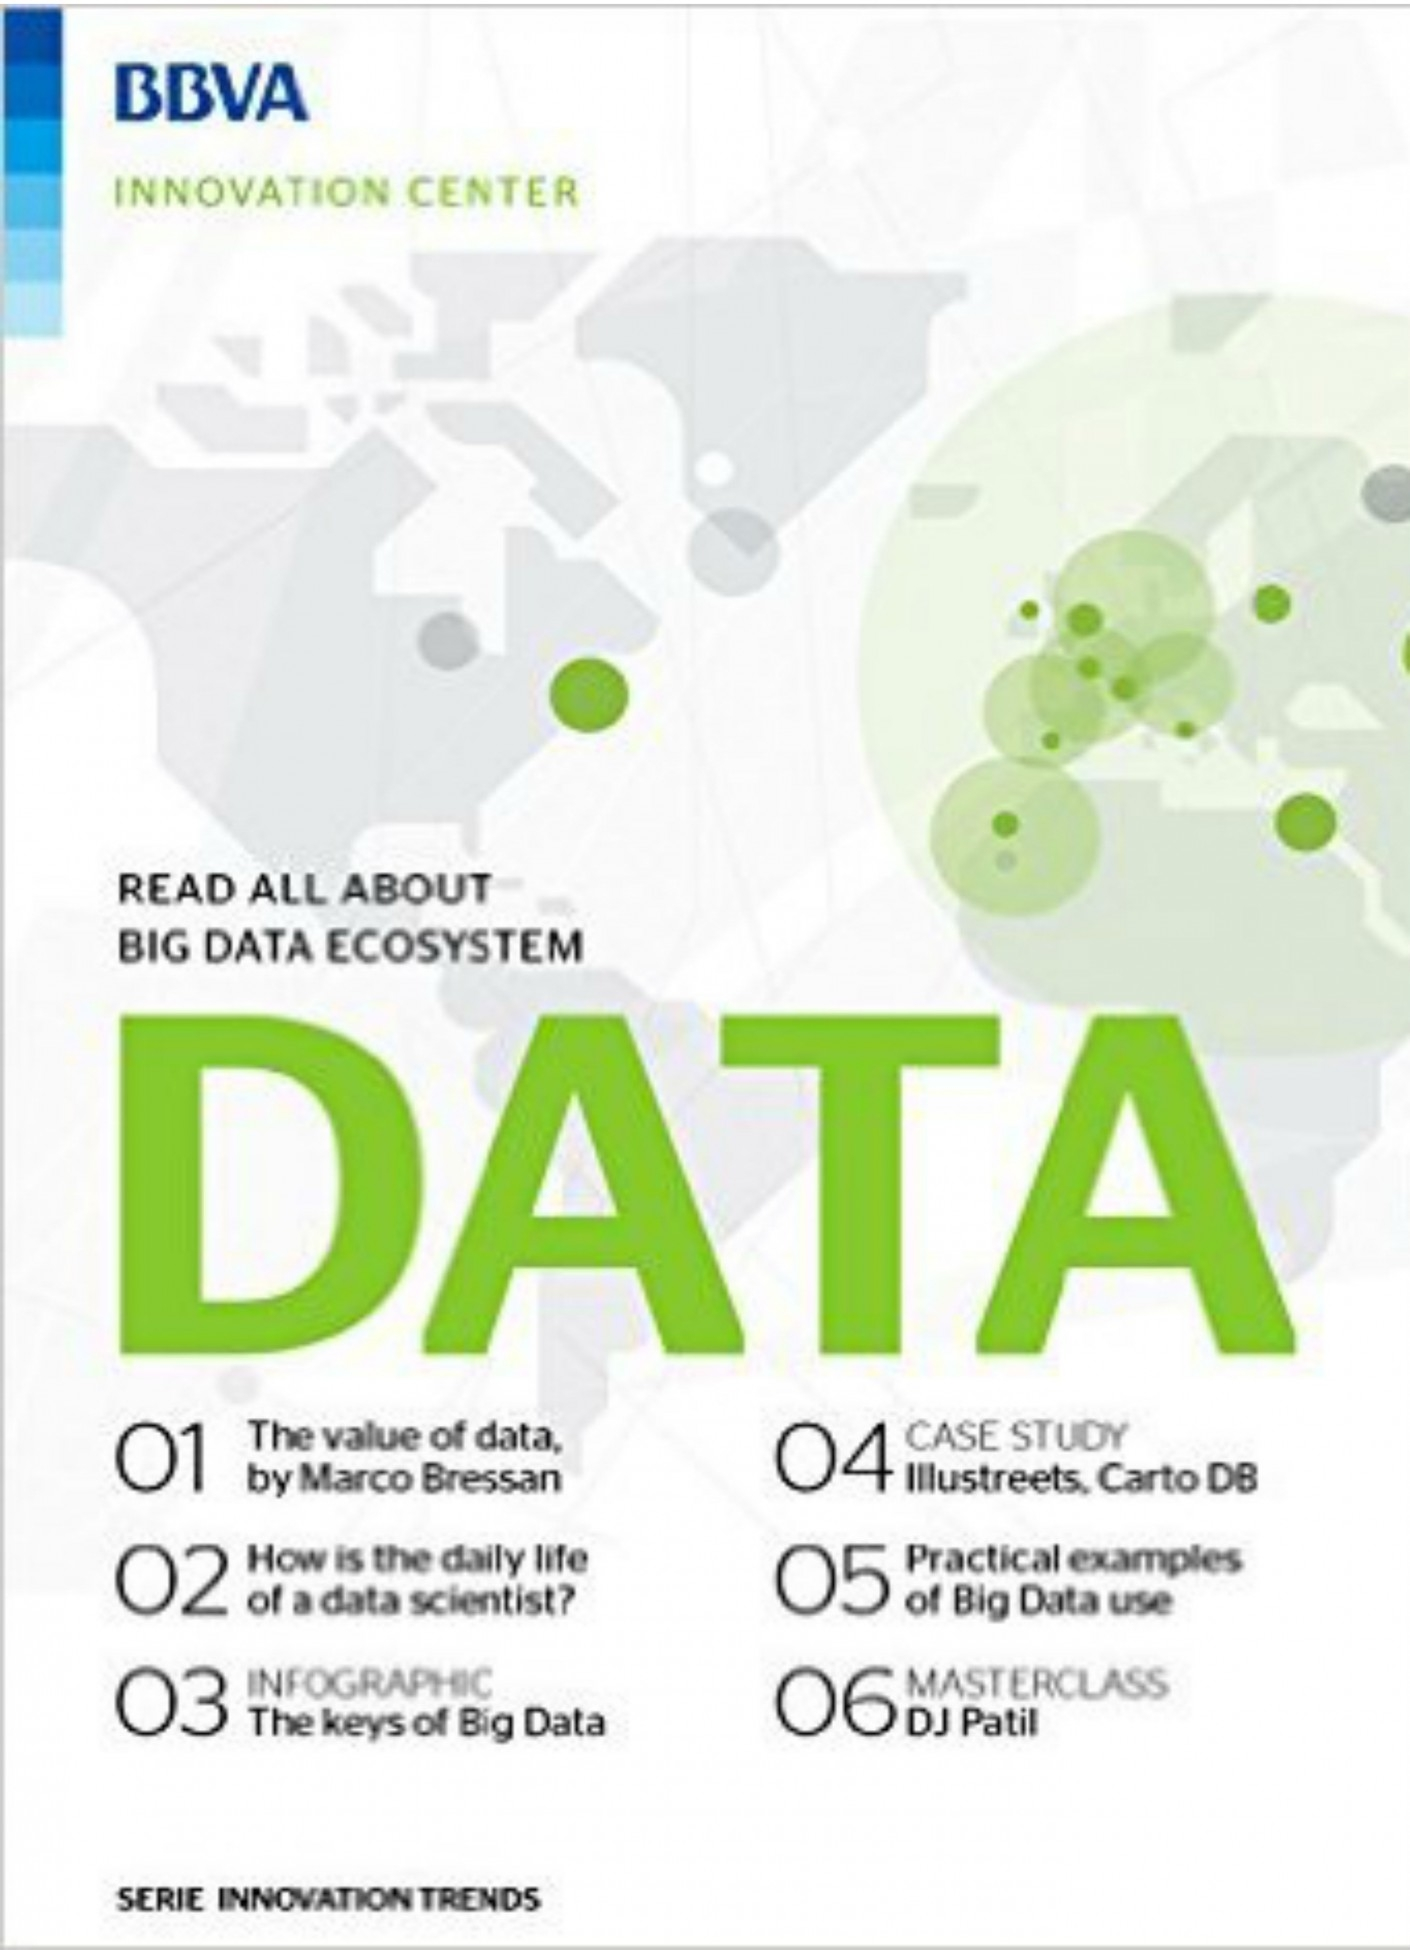 Ebook: Data, all about Big Data ecosystem (English) | BBVA